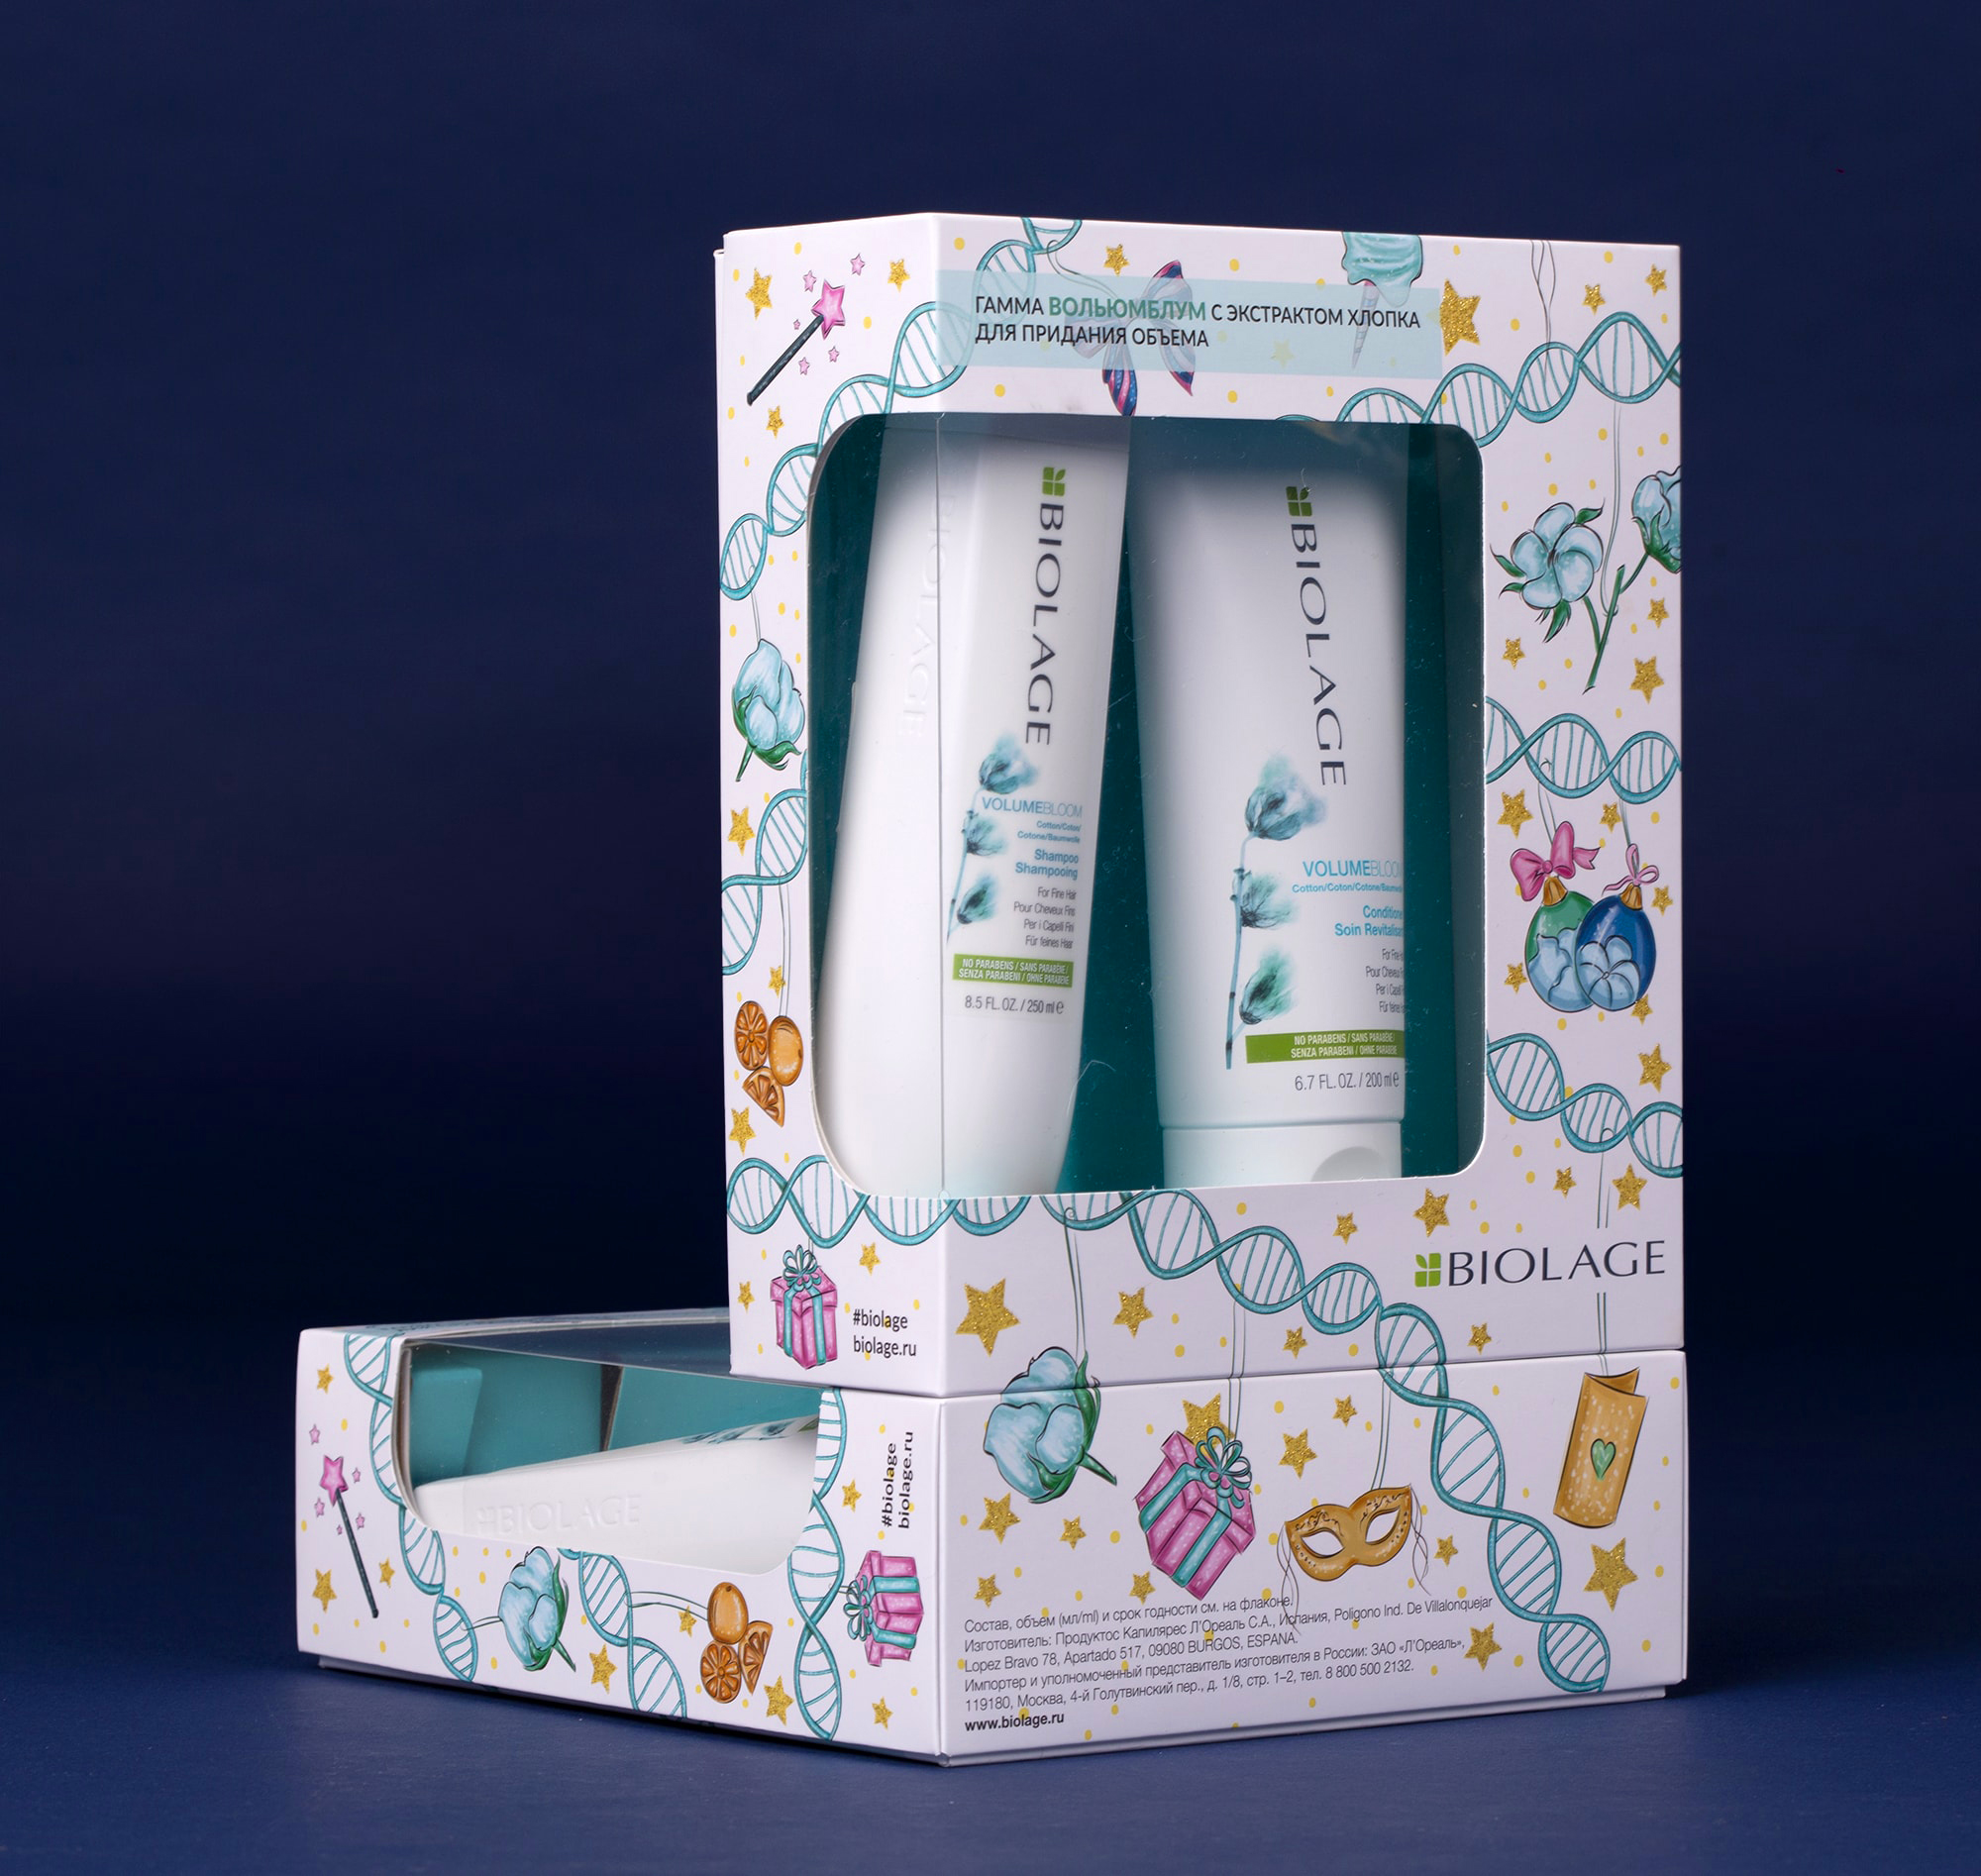 biolage new year box illustration